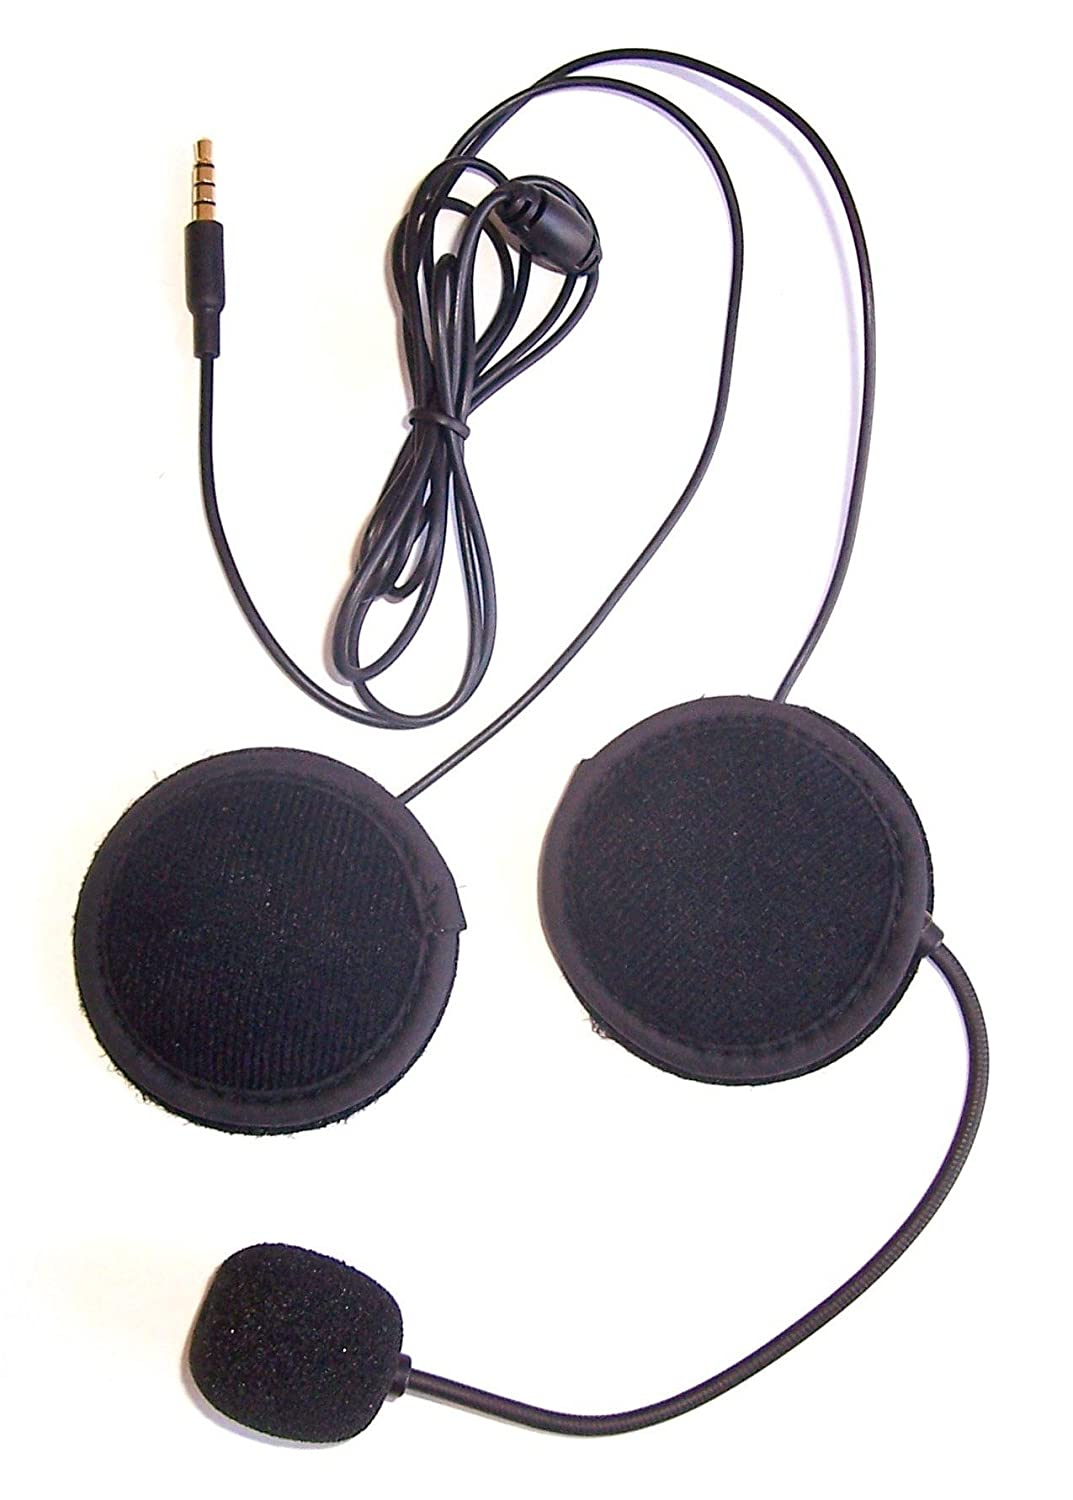 Amazon.com: KOKKIA Sports compatible Motorcycle Helmet Stereo Earphones + Microphone (Black cables) to iPods/iPhones/iPads/Music/Audio devices with 3.5mm ...